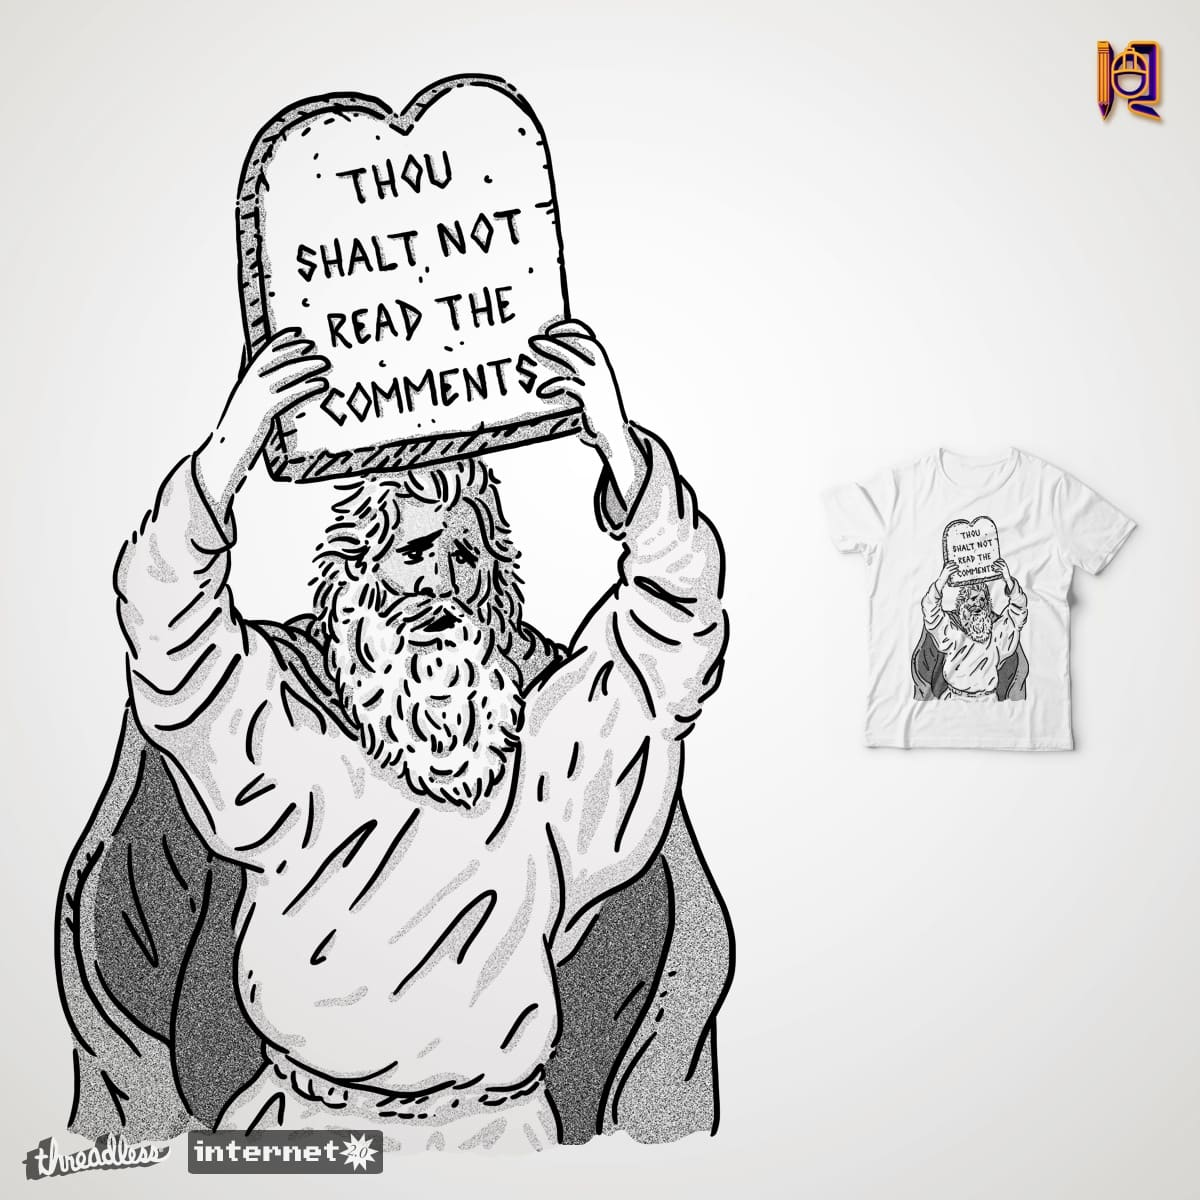 The first Commandment of the Internet by rodrigobhz on Threadless